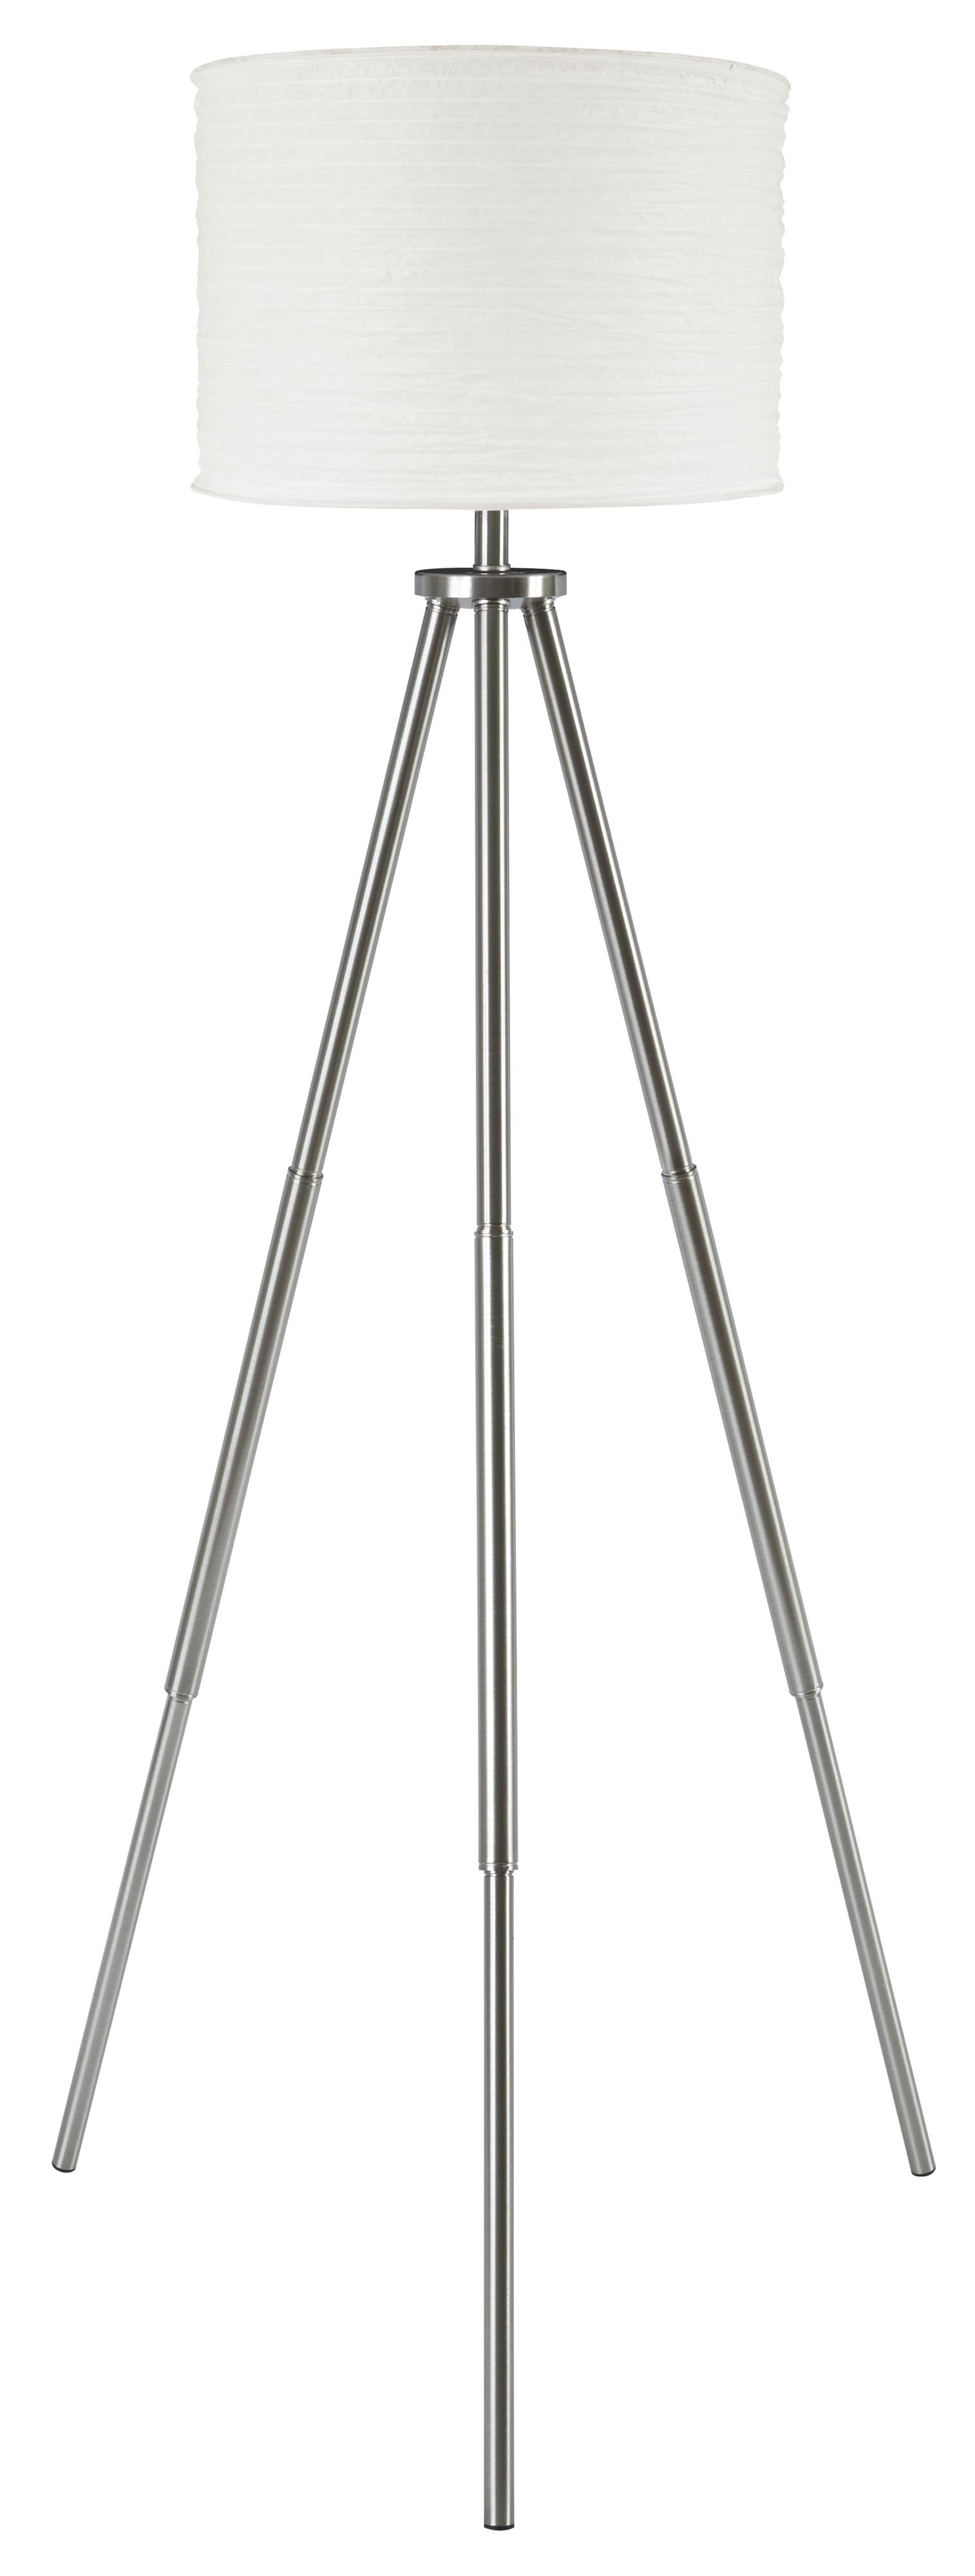 Signature Design by Ashley Lamps - Contemporary Susette Metal Floor Lamp - Item Number: L204141